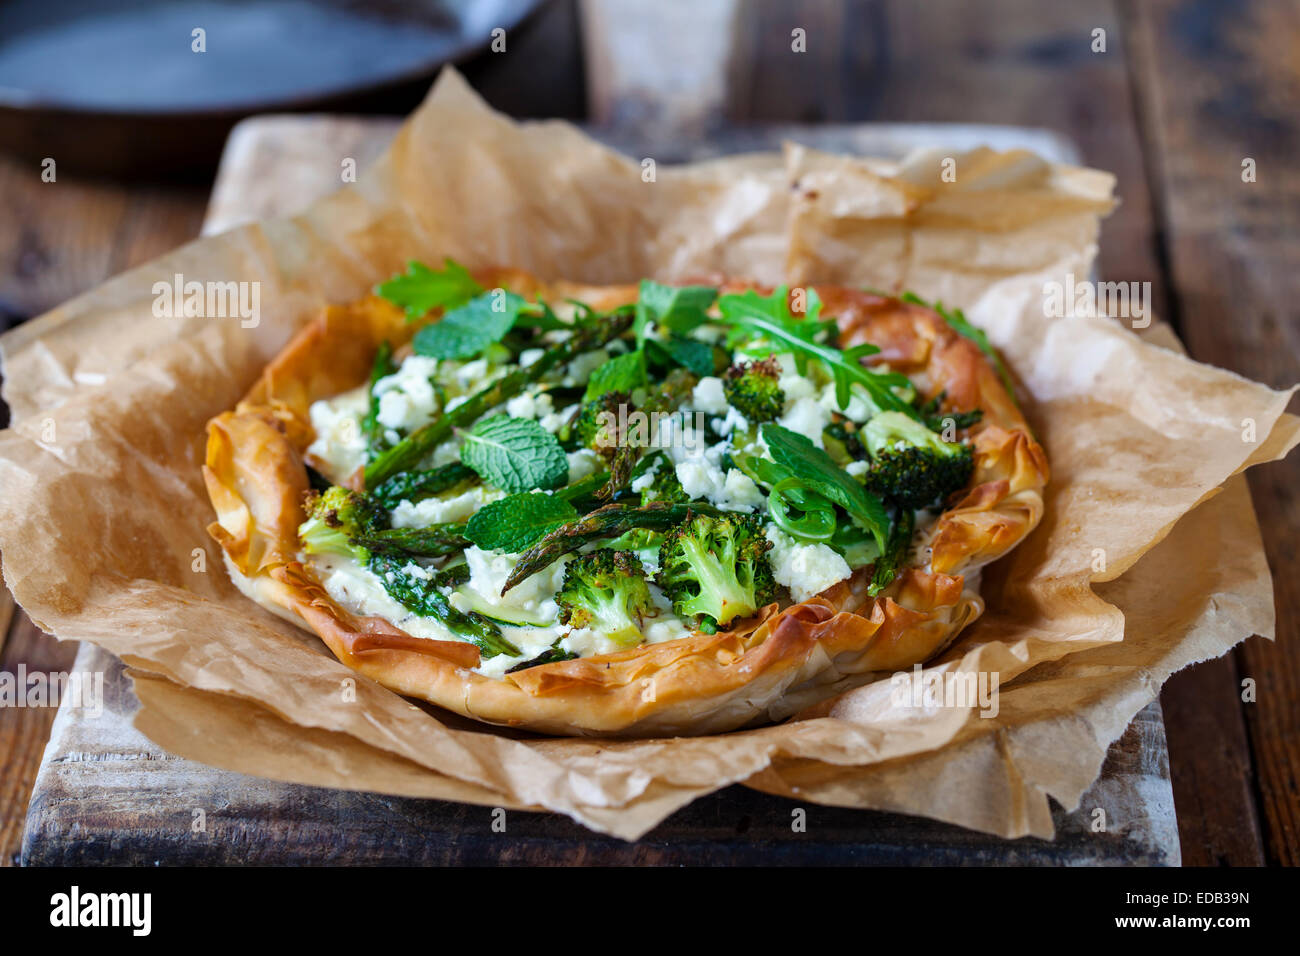 Filo pastry pie with roast green vegetable - Stock Image